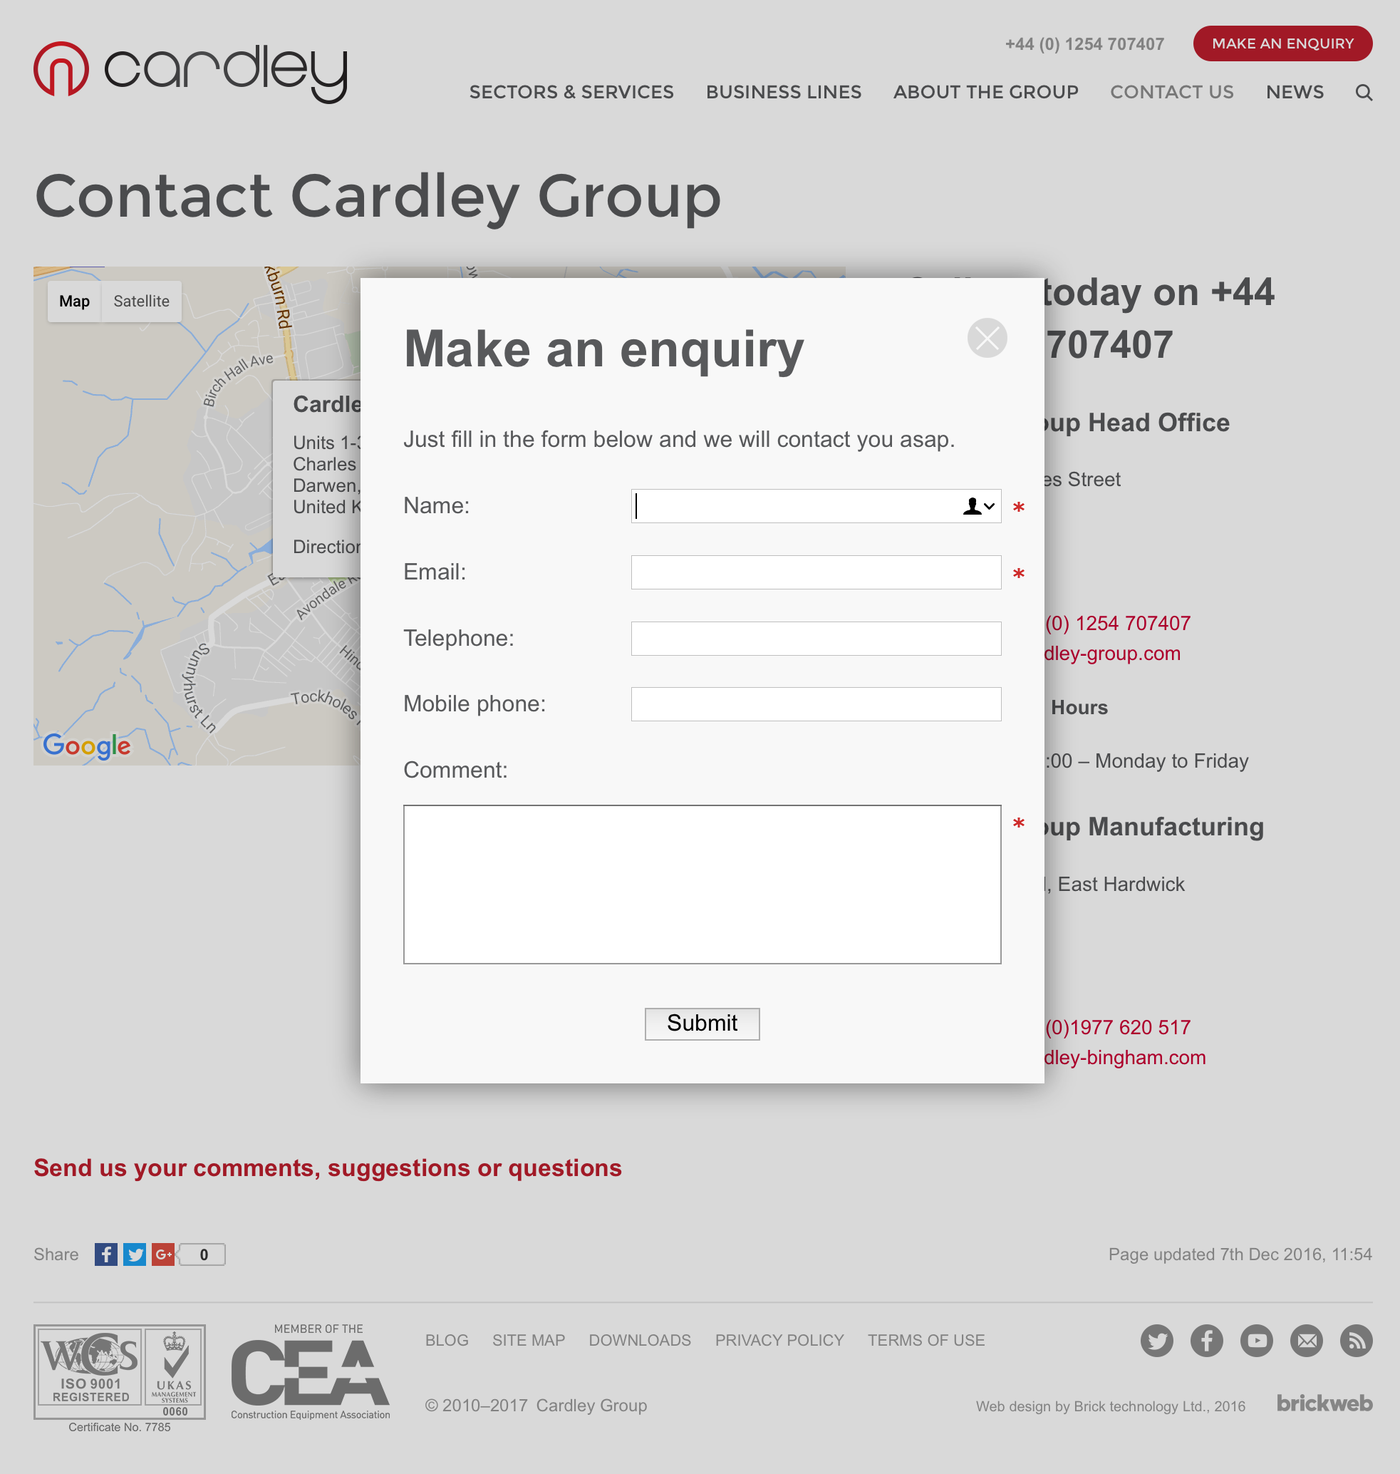 Cardley Group Enquiry form